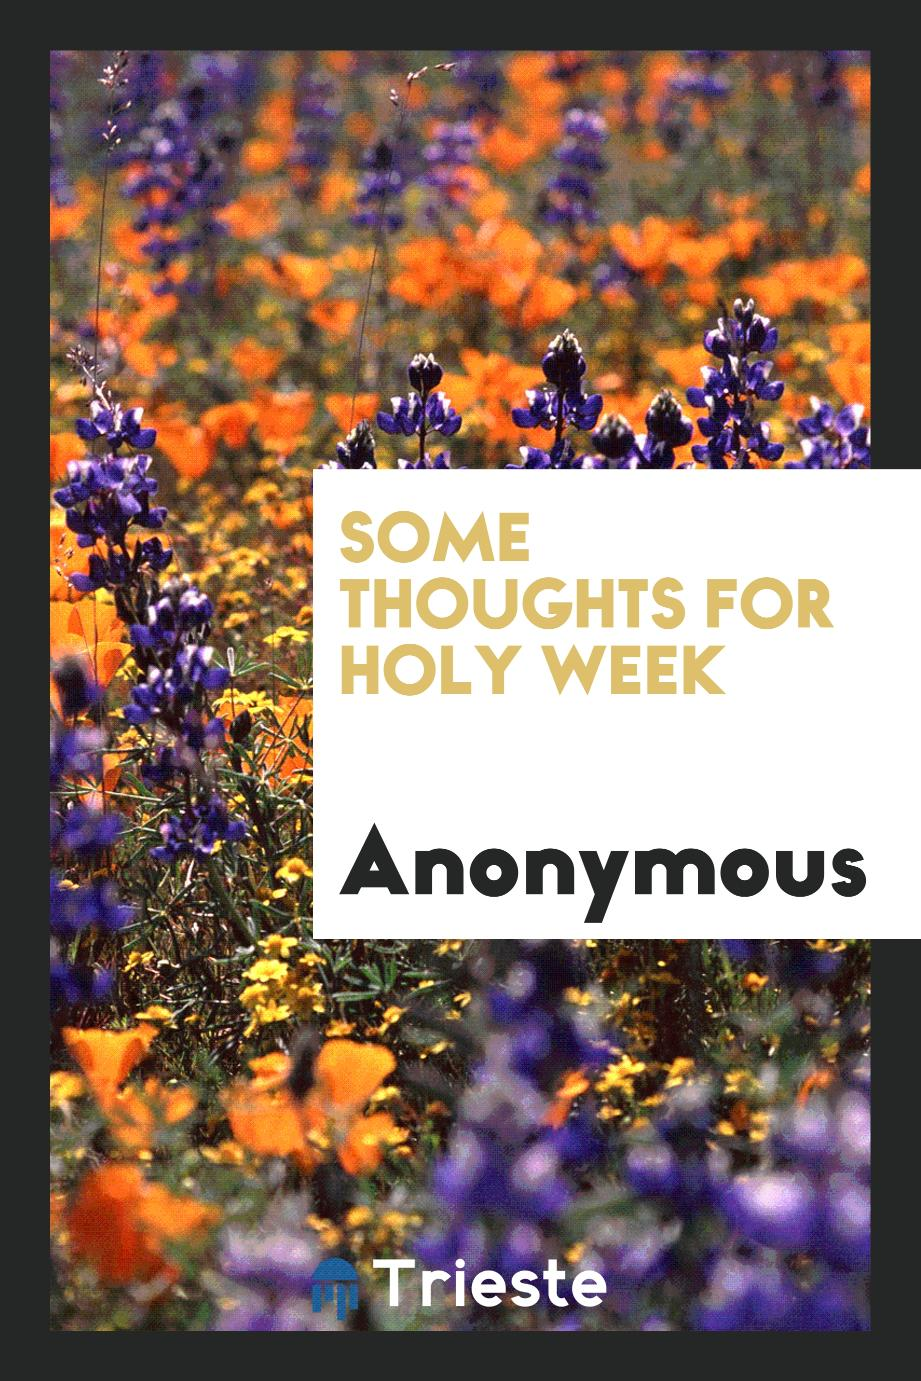 Some thoughts for Holy week